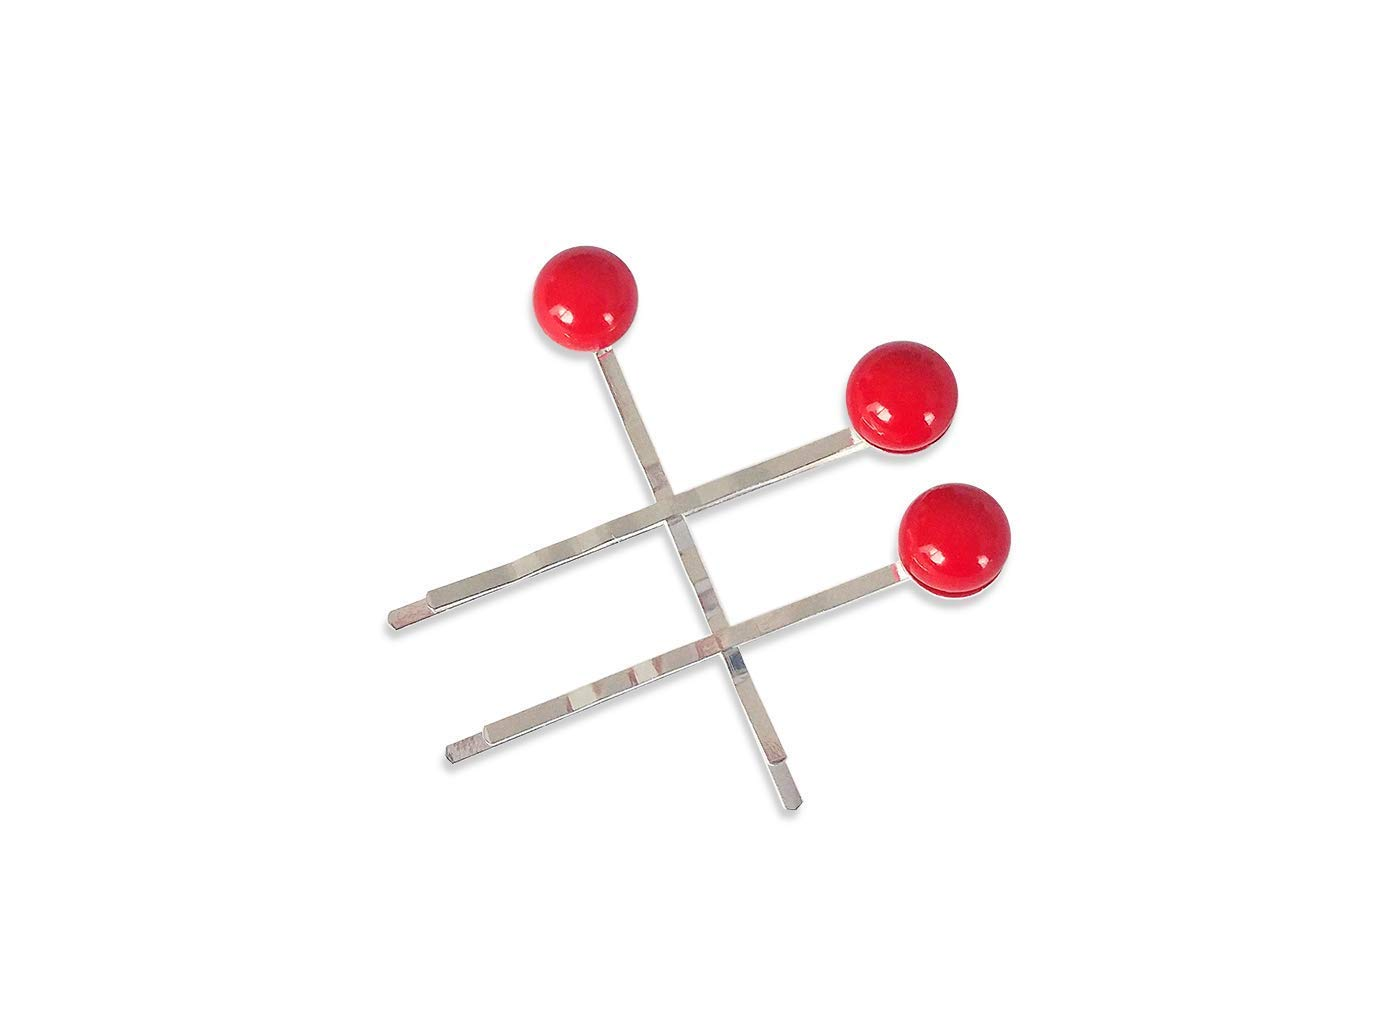 Red Berry Hair Clips for Women Modern Minimal Style Set of Three Silver Bobby Pins